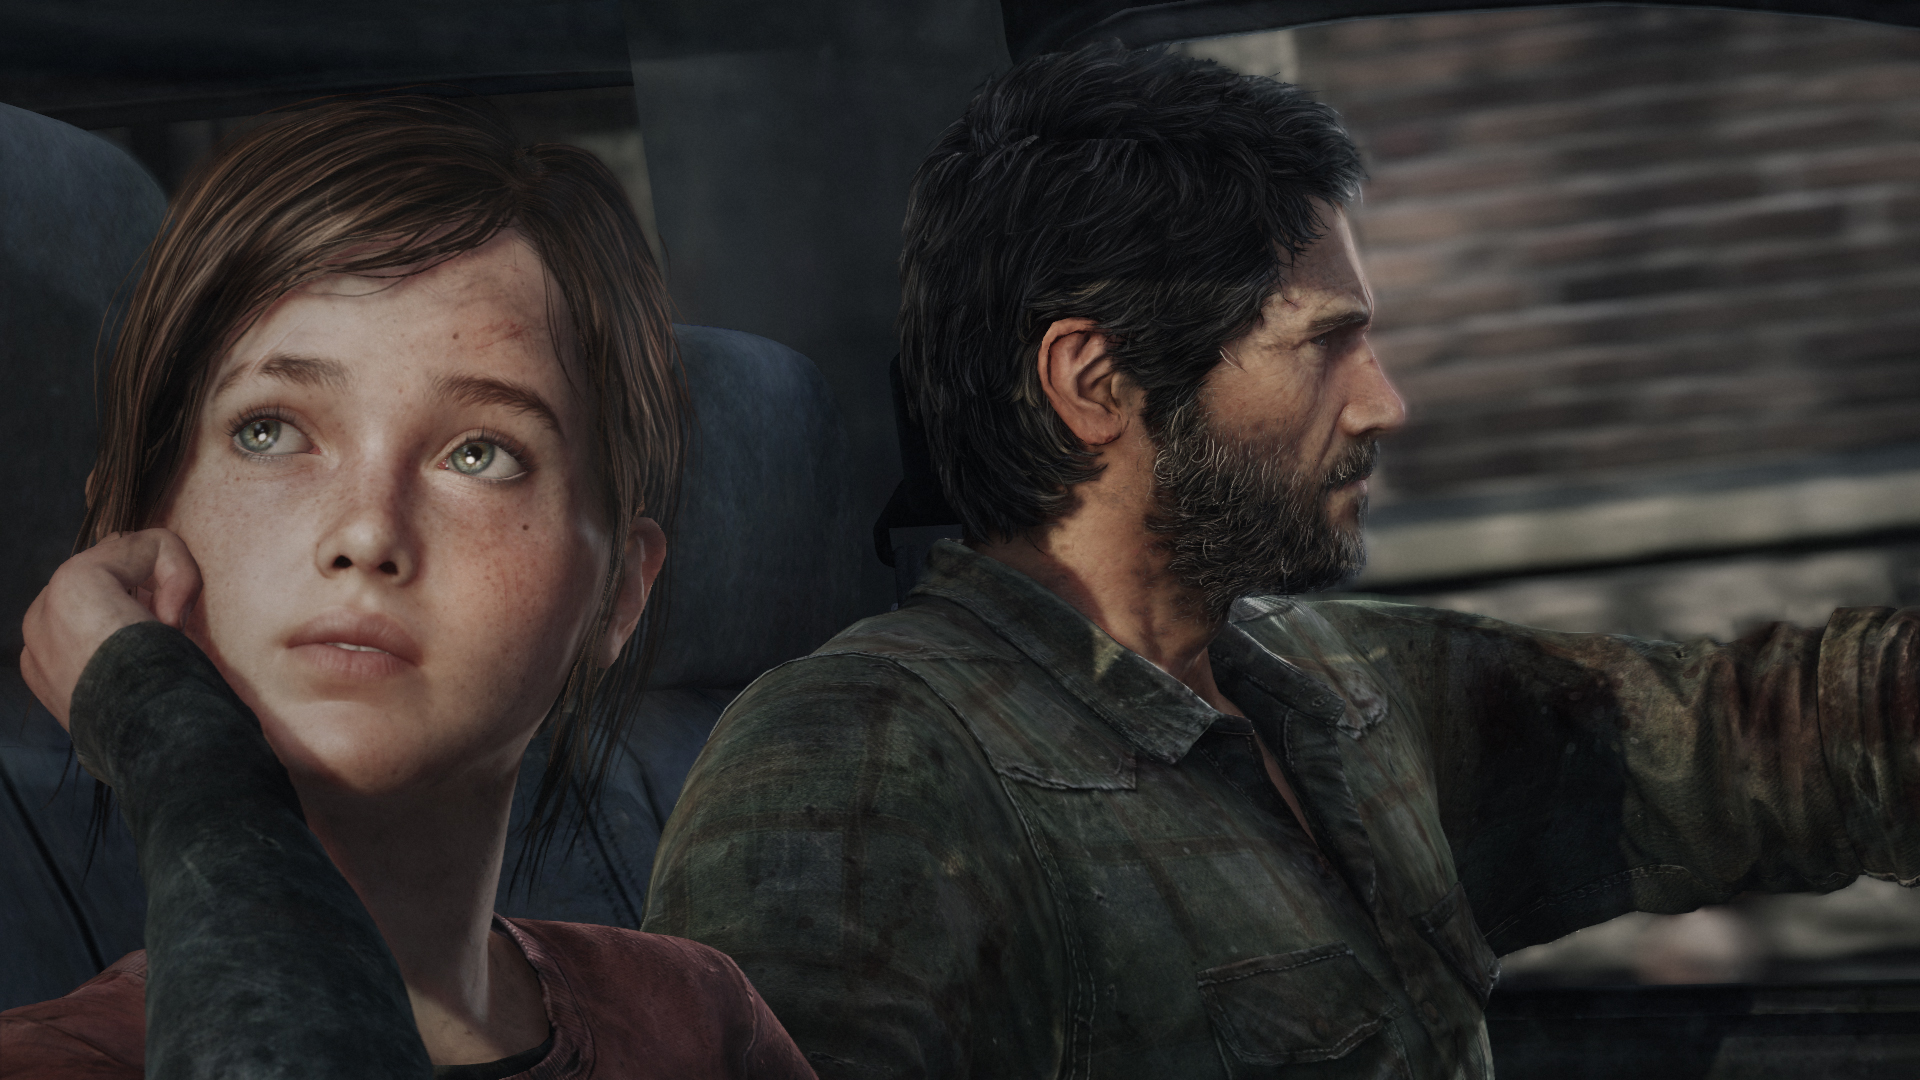 The Last of Us © Naughty Dog / Sony Computer Entertainment.